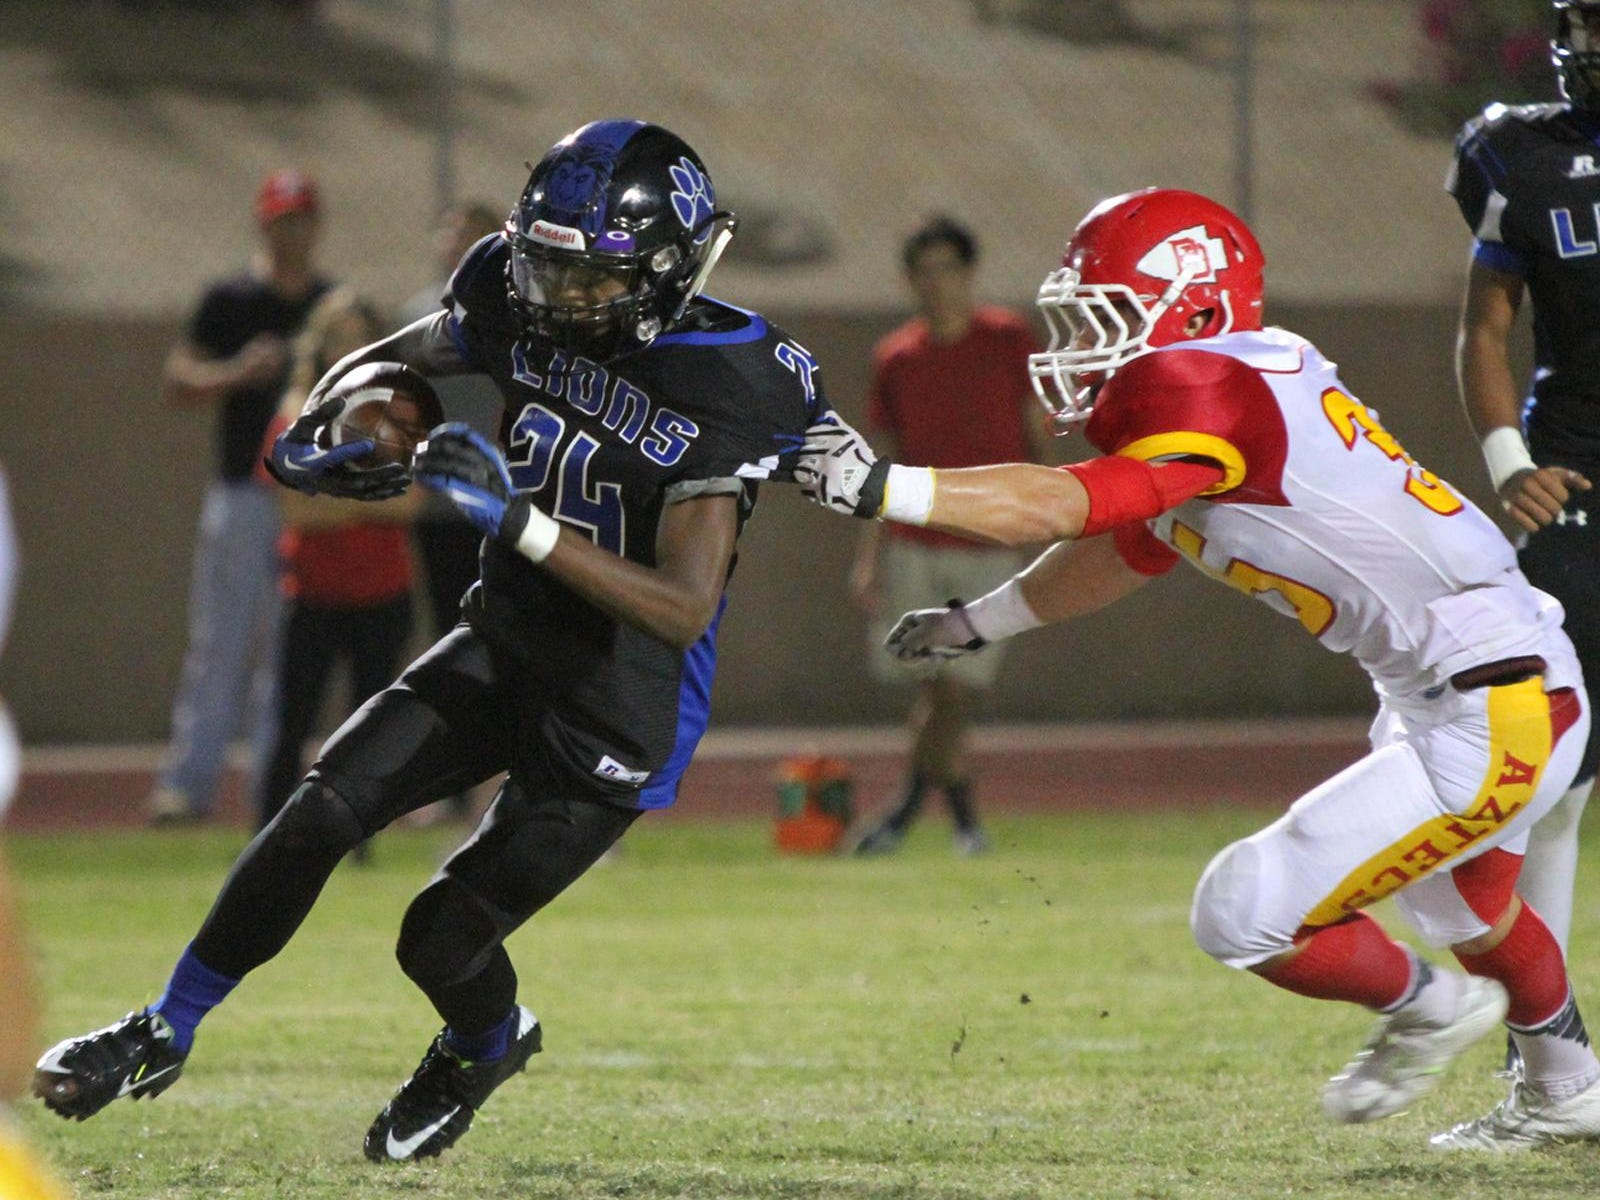 10/16/15 Taya Gray, Special to The Desert Sun Cathedral City's James Green III runs the ball as Palm Desert's Denton Anderson gets a grab of his jersey during the first half of the game in Cathedral City on Friday, October 16, 2015.